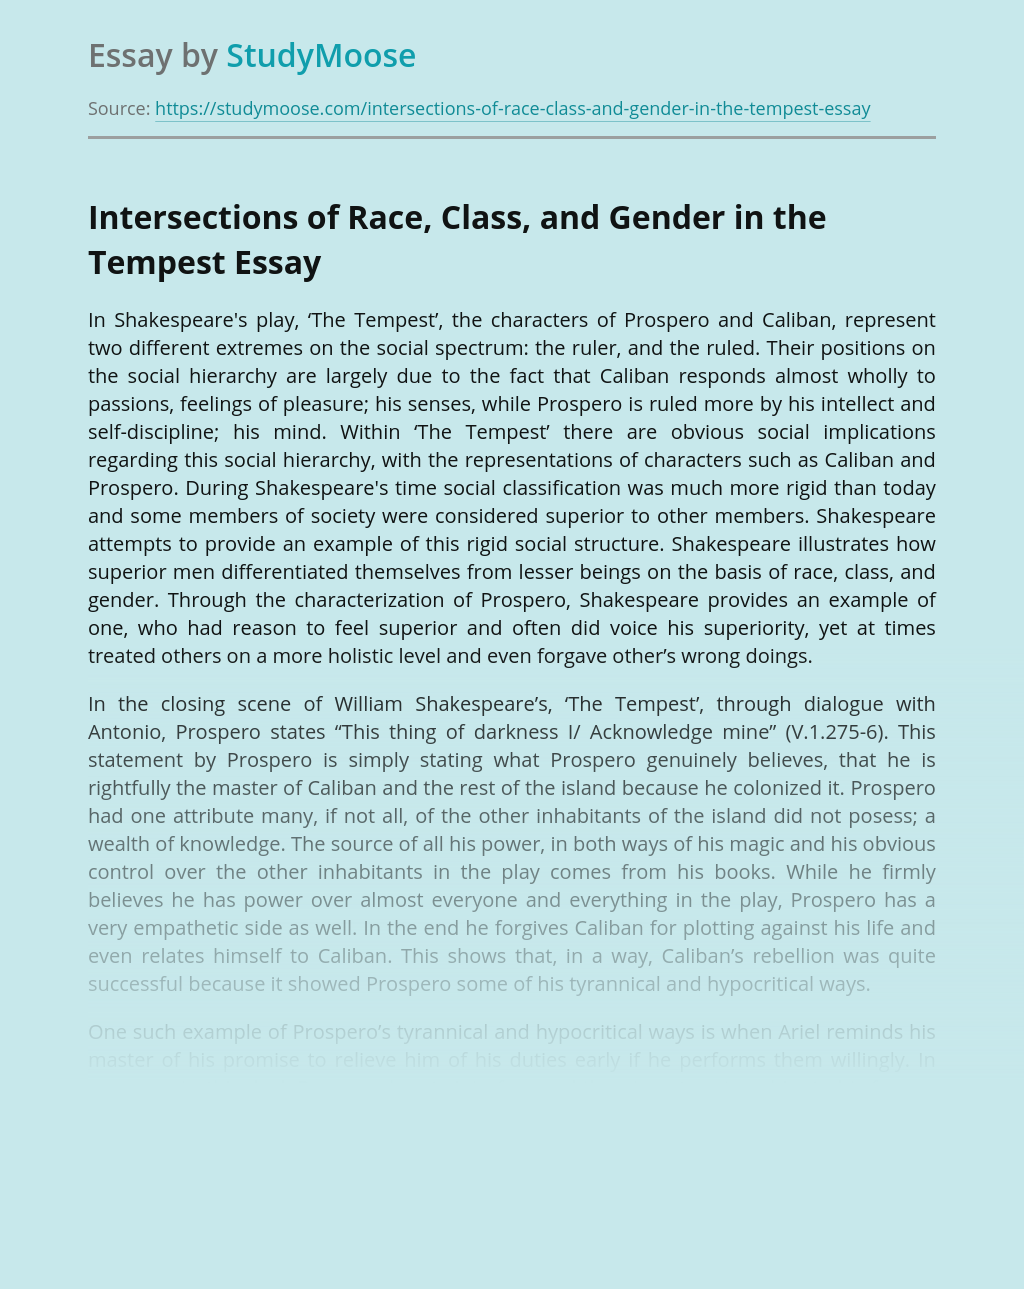 Intersections of Race, Class, and Gender in the Tempest